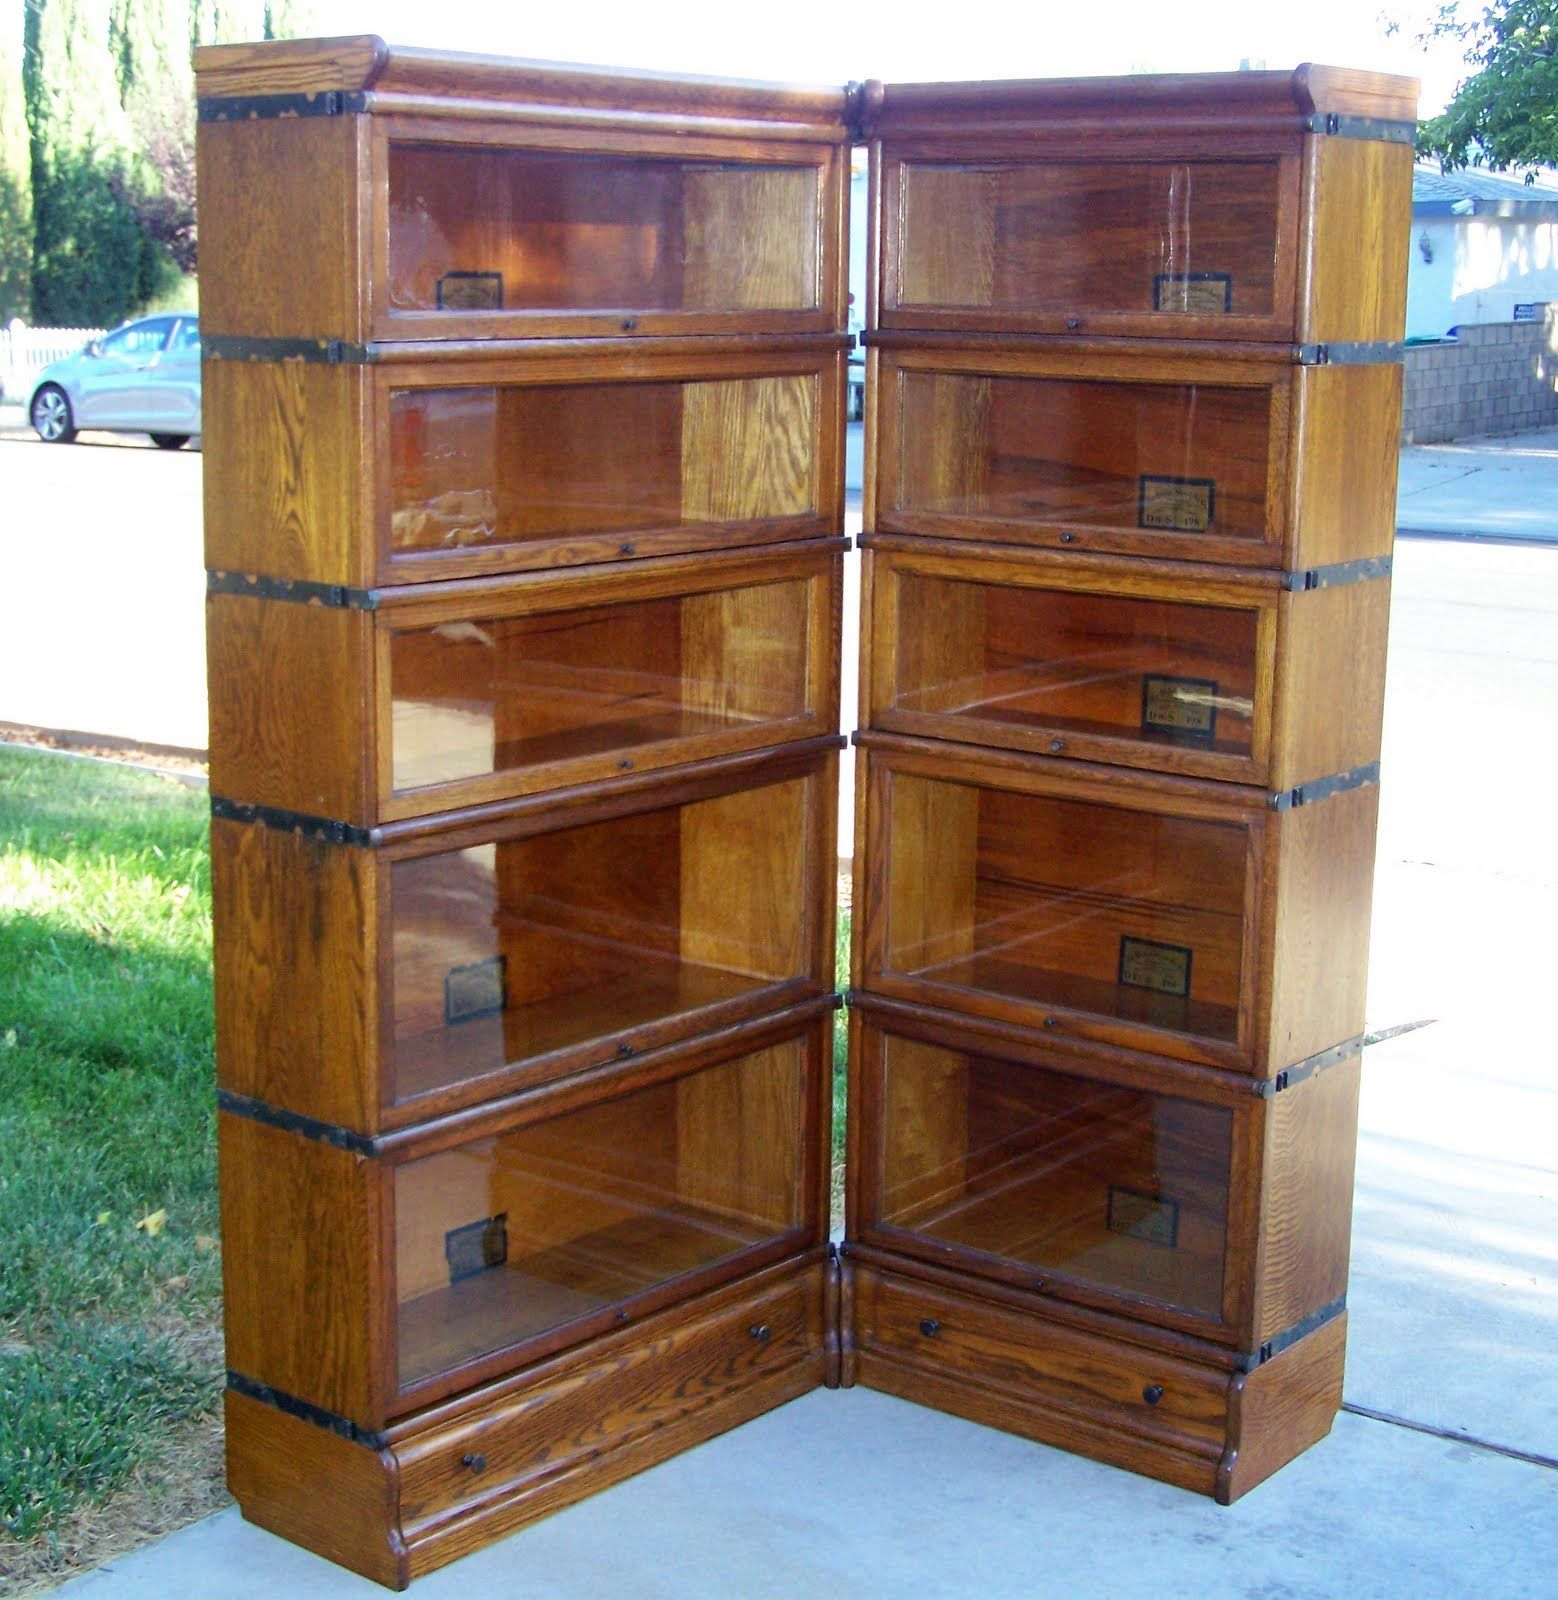 bookshelf chair for sale ashley dining chairs 25 quot 3 4 size globe wernicke bookcase corner unit antique